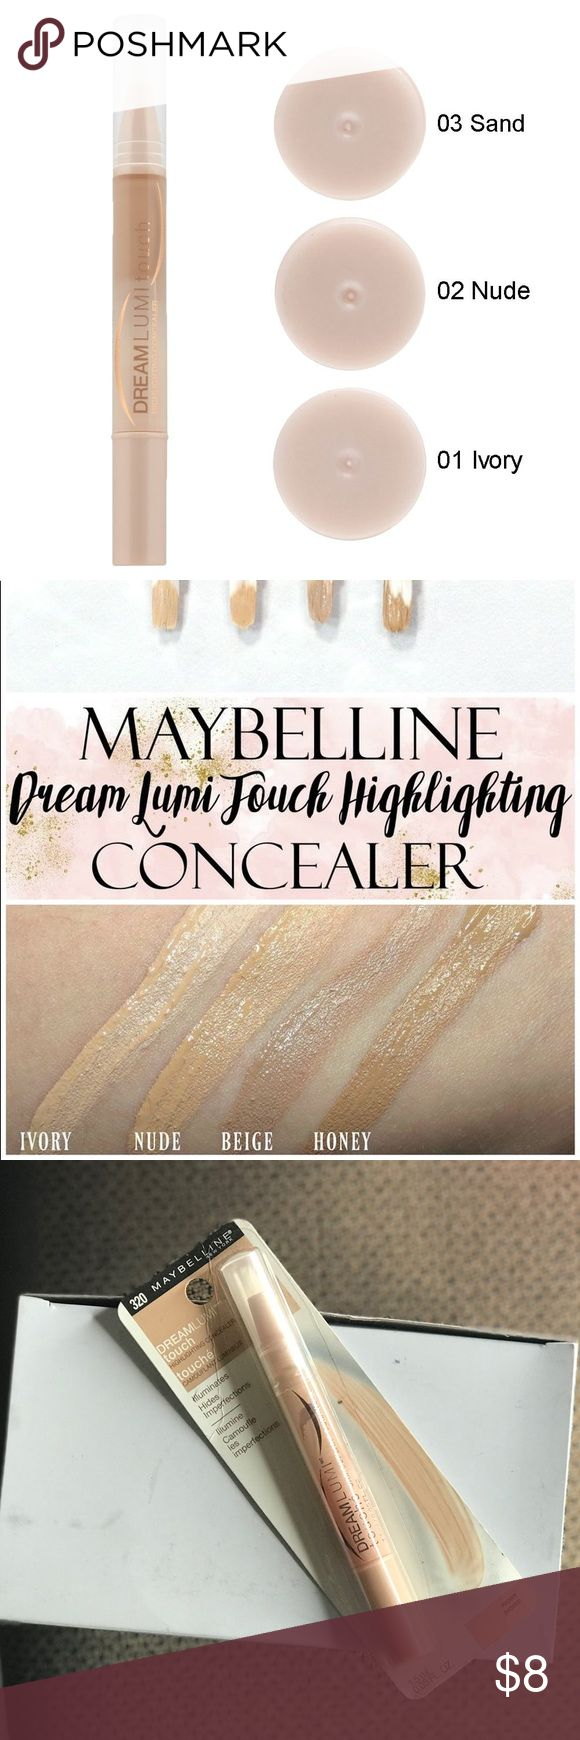 Maybelline New York Dream Lumi Touch Concealer Maybelline New York Dream Lumi Touch Highlight Concealer, Ivory. Brand new. Maybelline Makeup Concealer